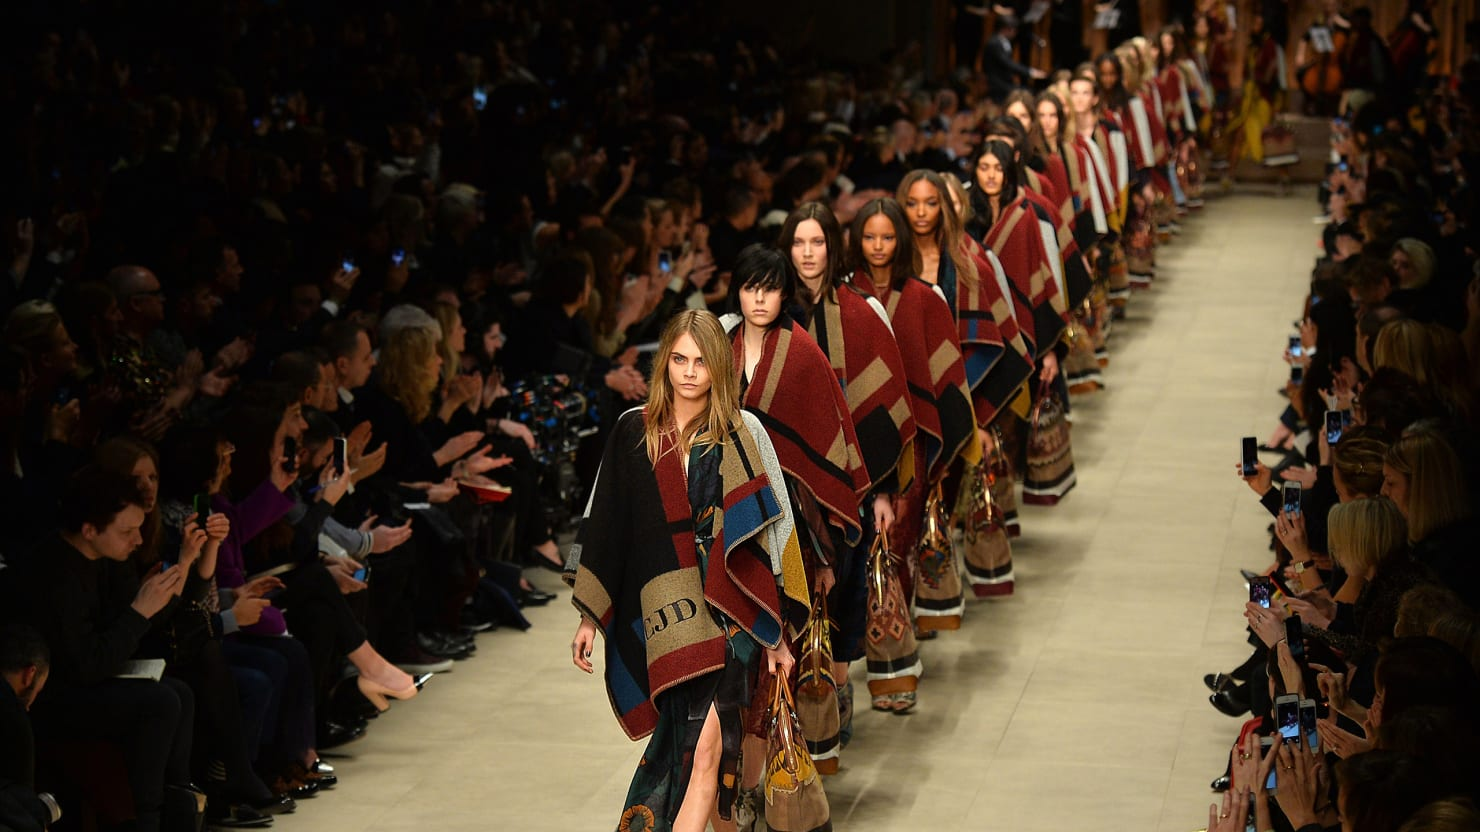 Art Takes the Runway at Burberry Prorsum Fall/Winter 2014 London Fashion Week